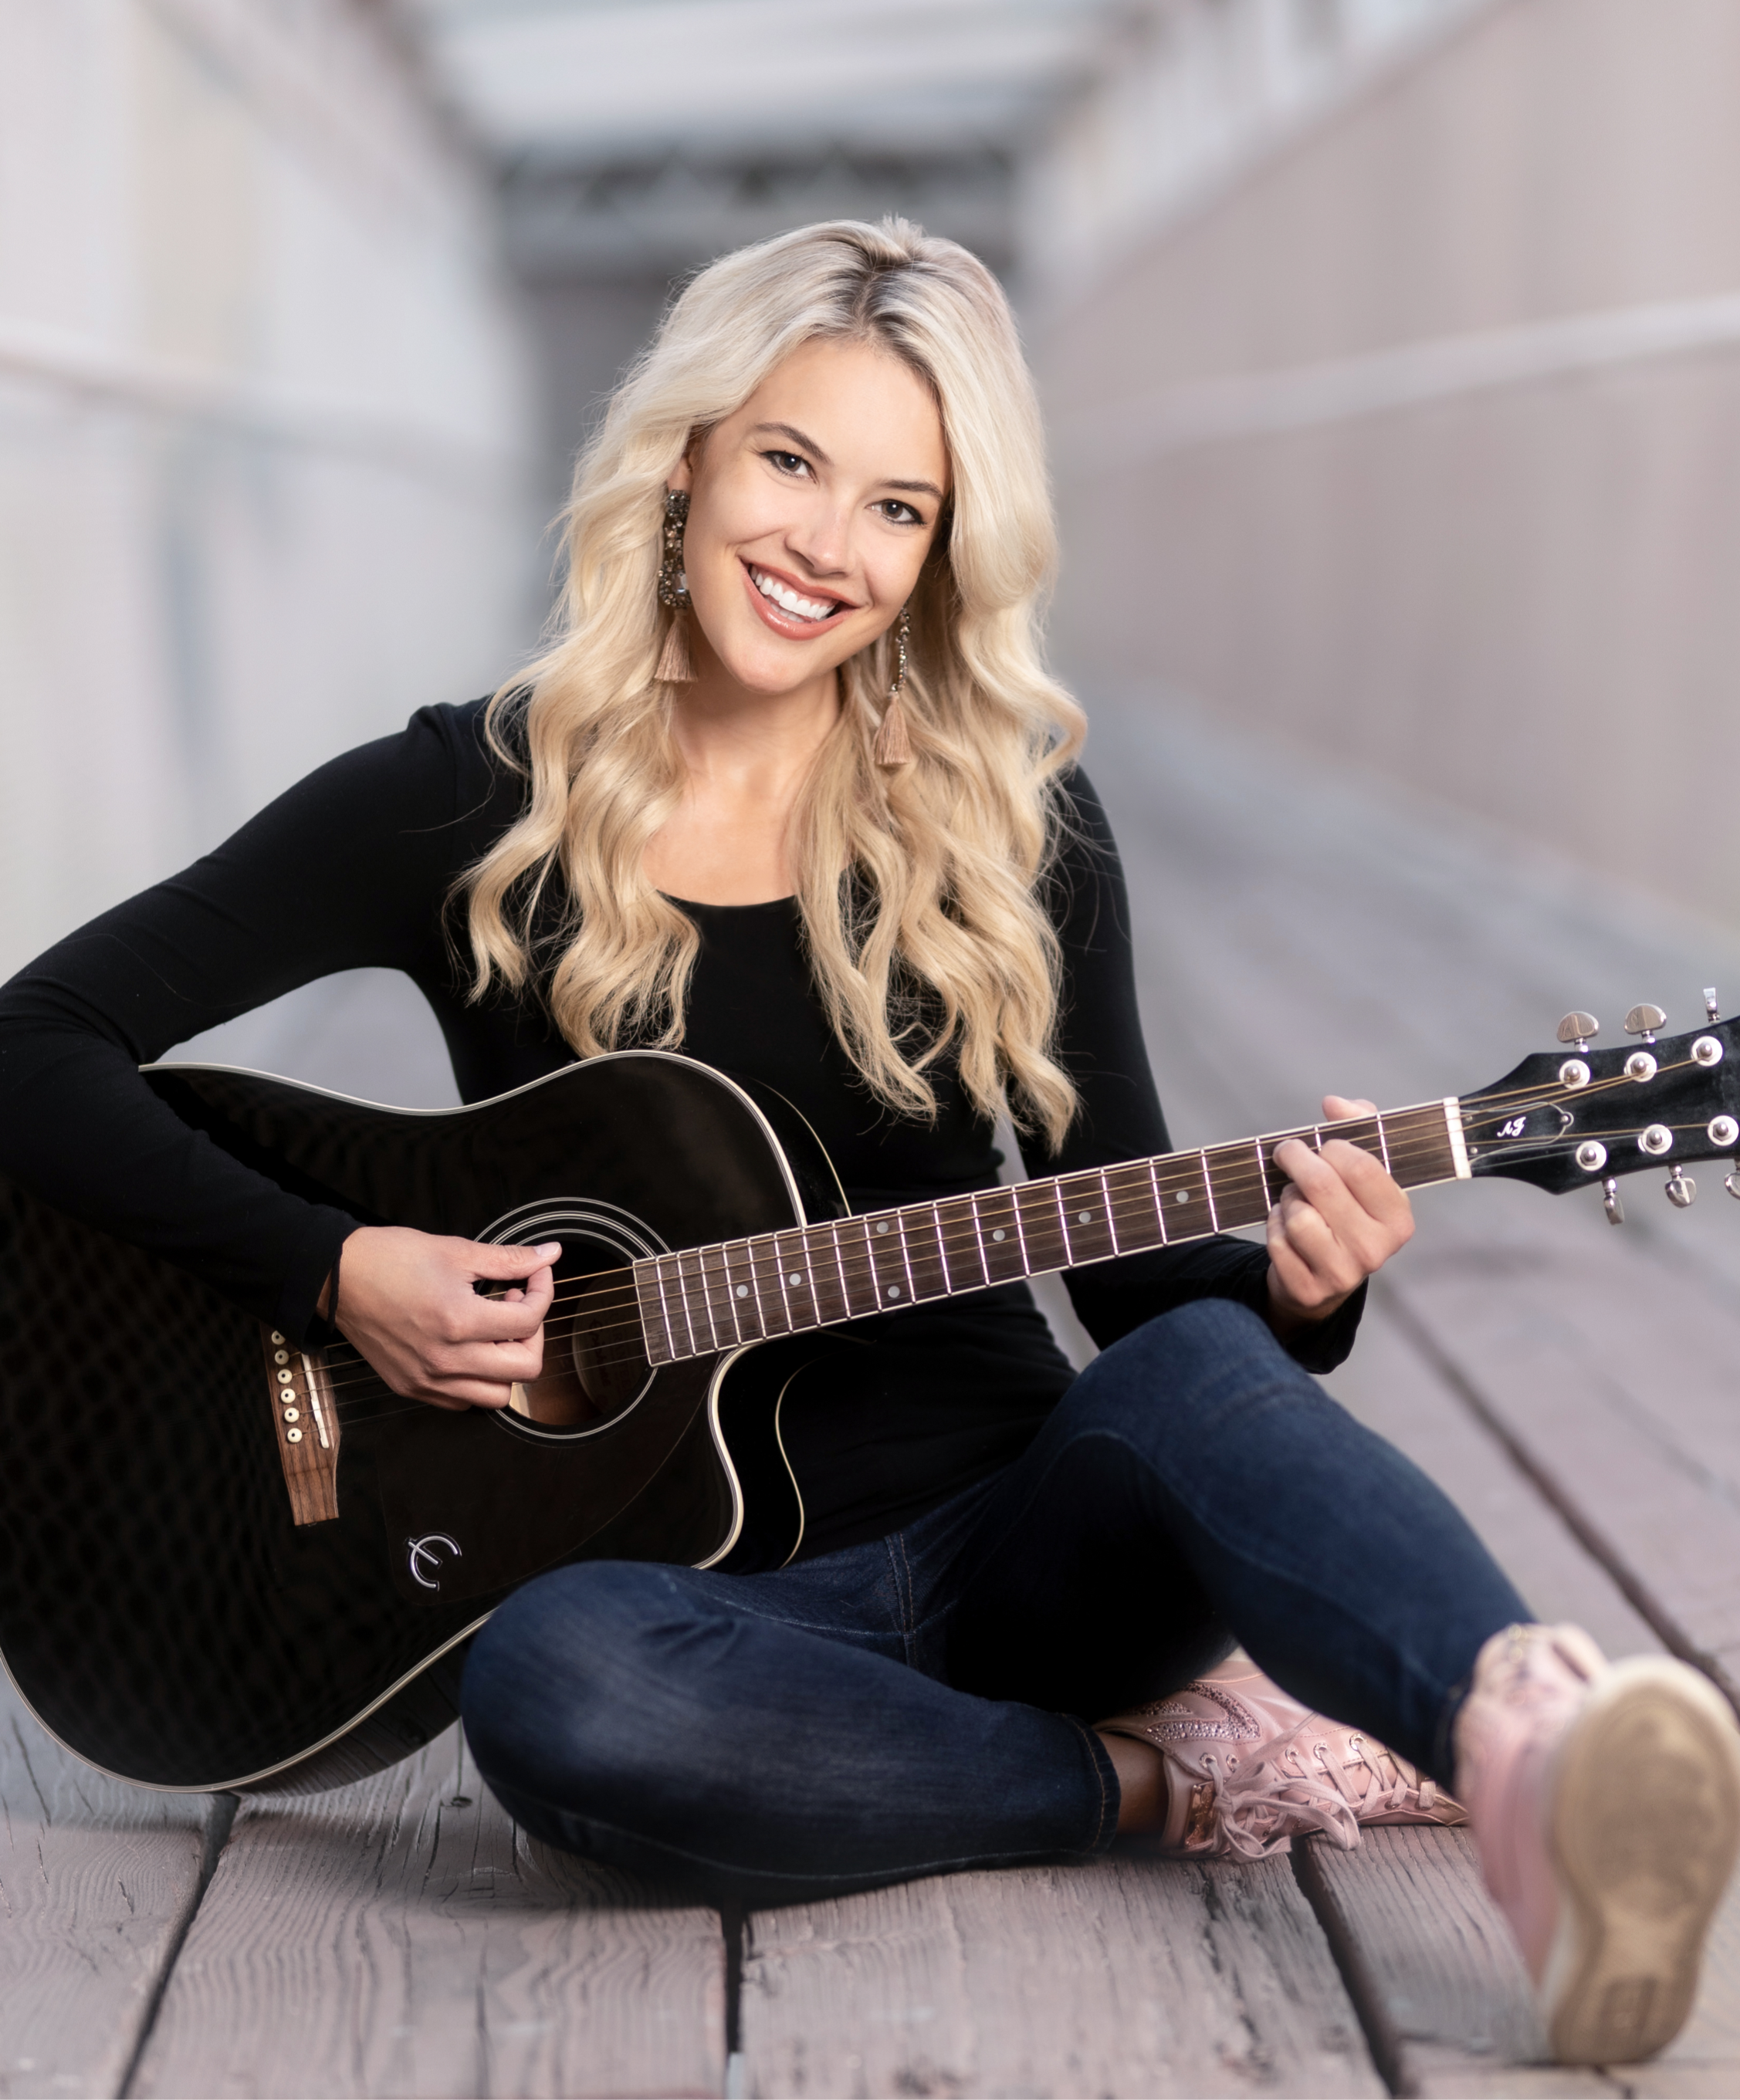 Ella Hartt - Country Music Singer/Songwriter